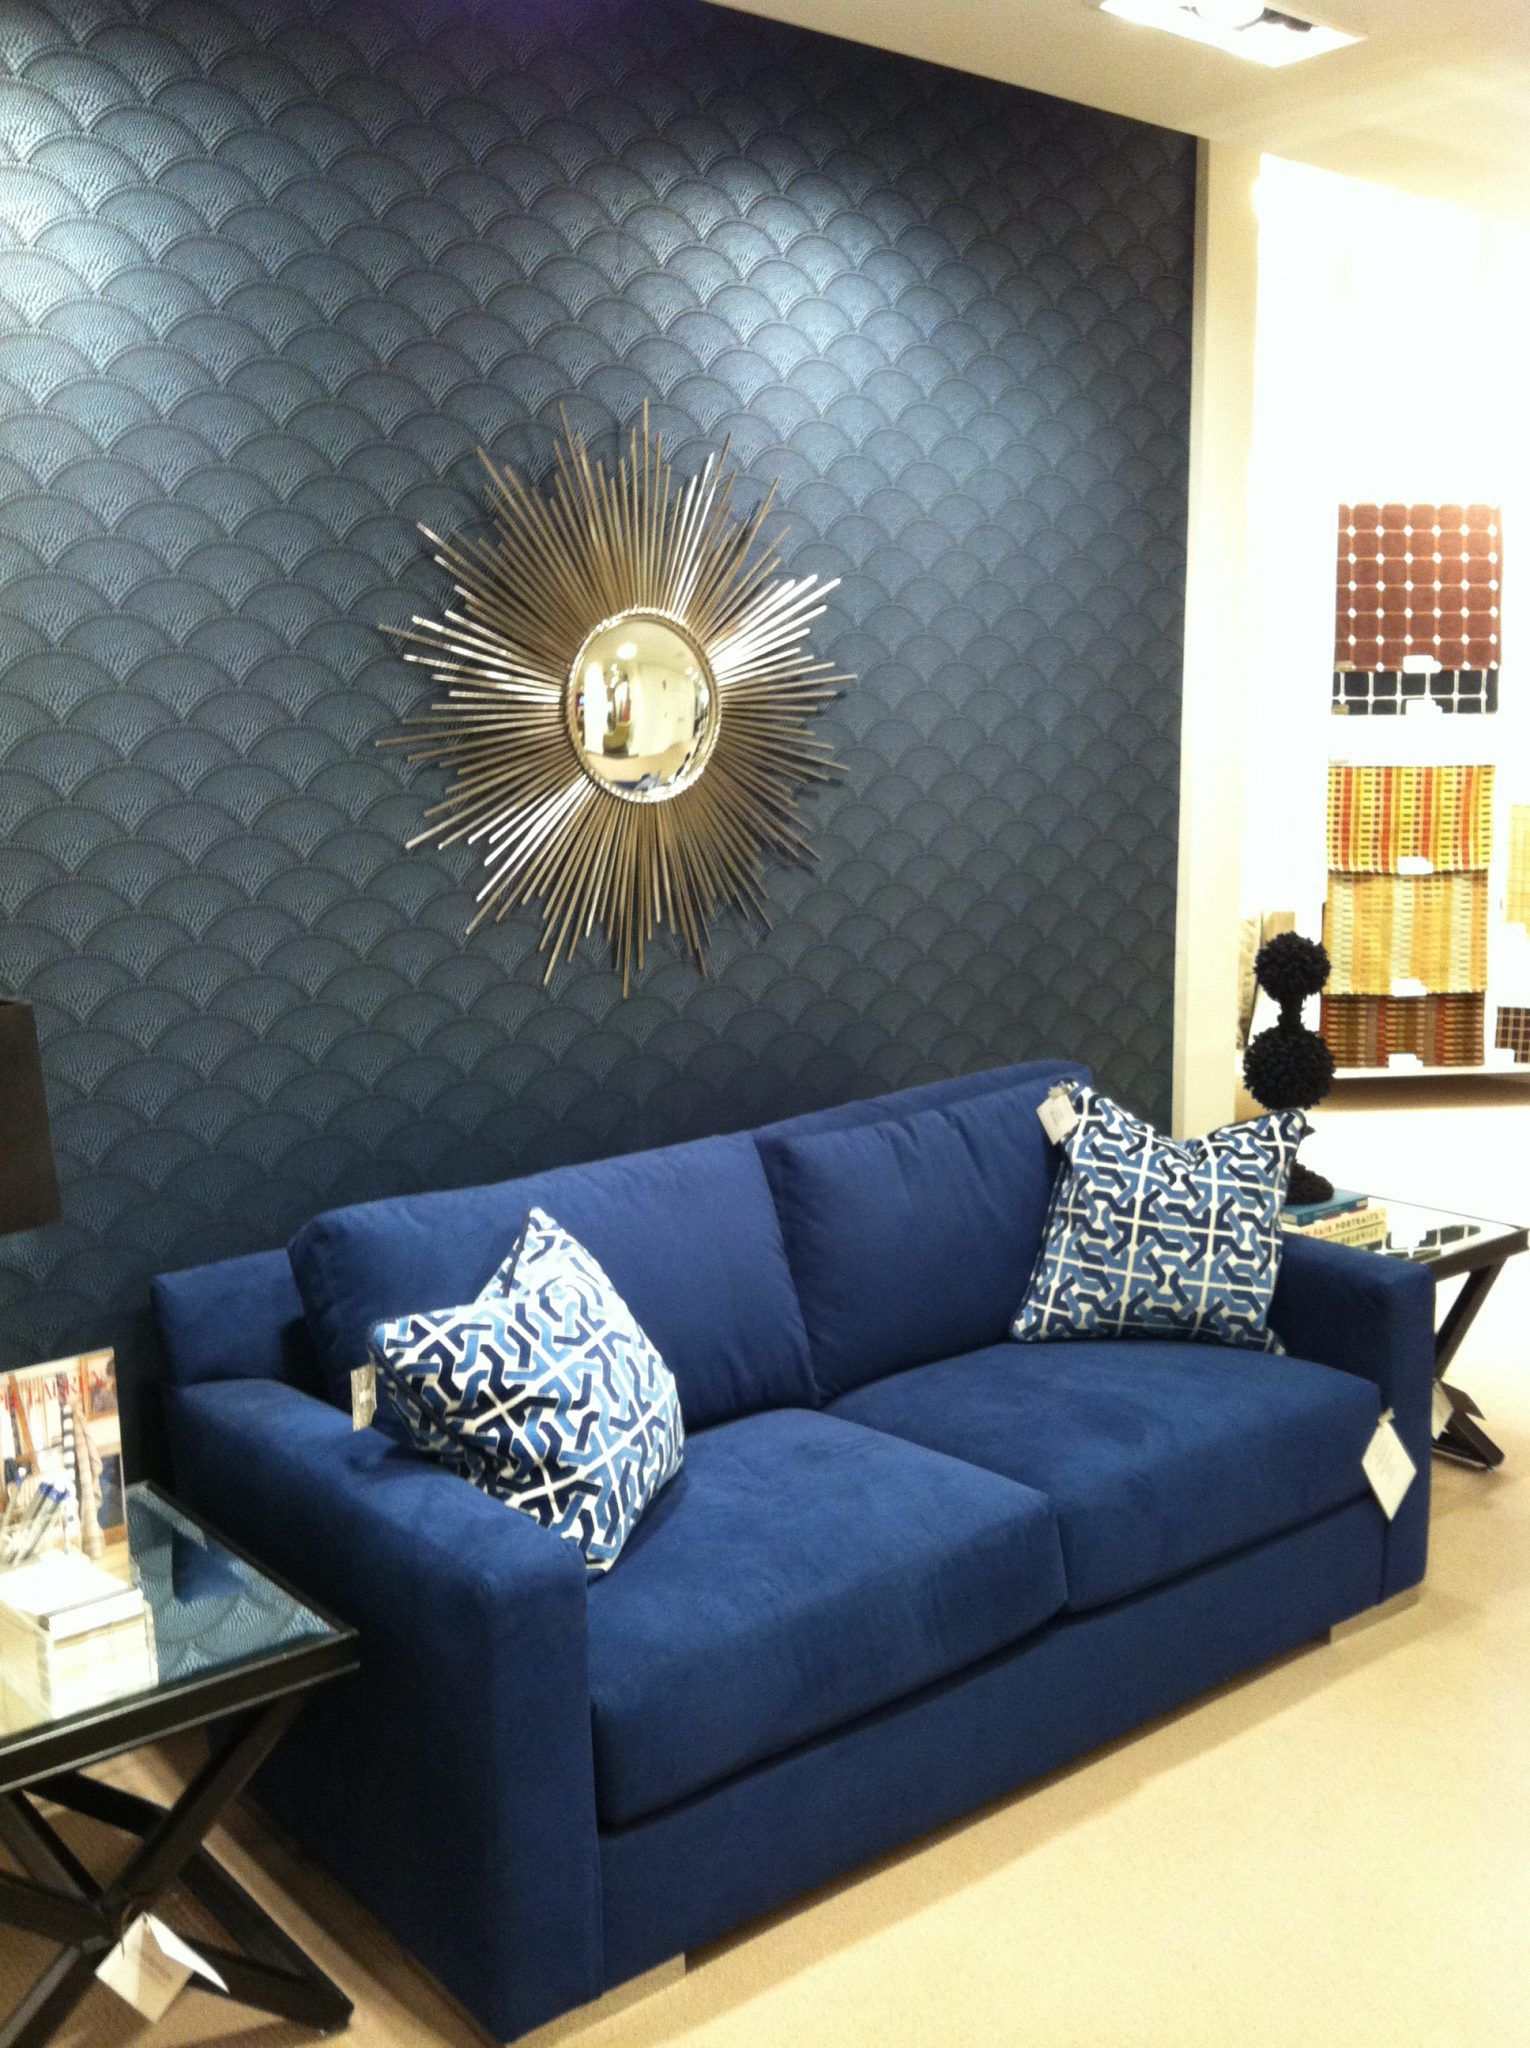 Klassische Sofas You Can Assemble Blue Sofa Living Room Ideas Navy Hd Wallpaper Idolza Intended For